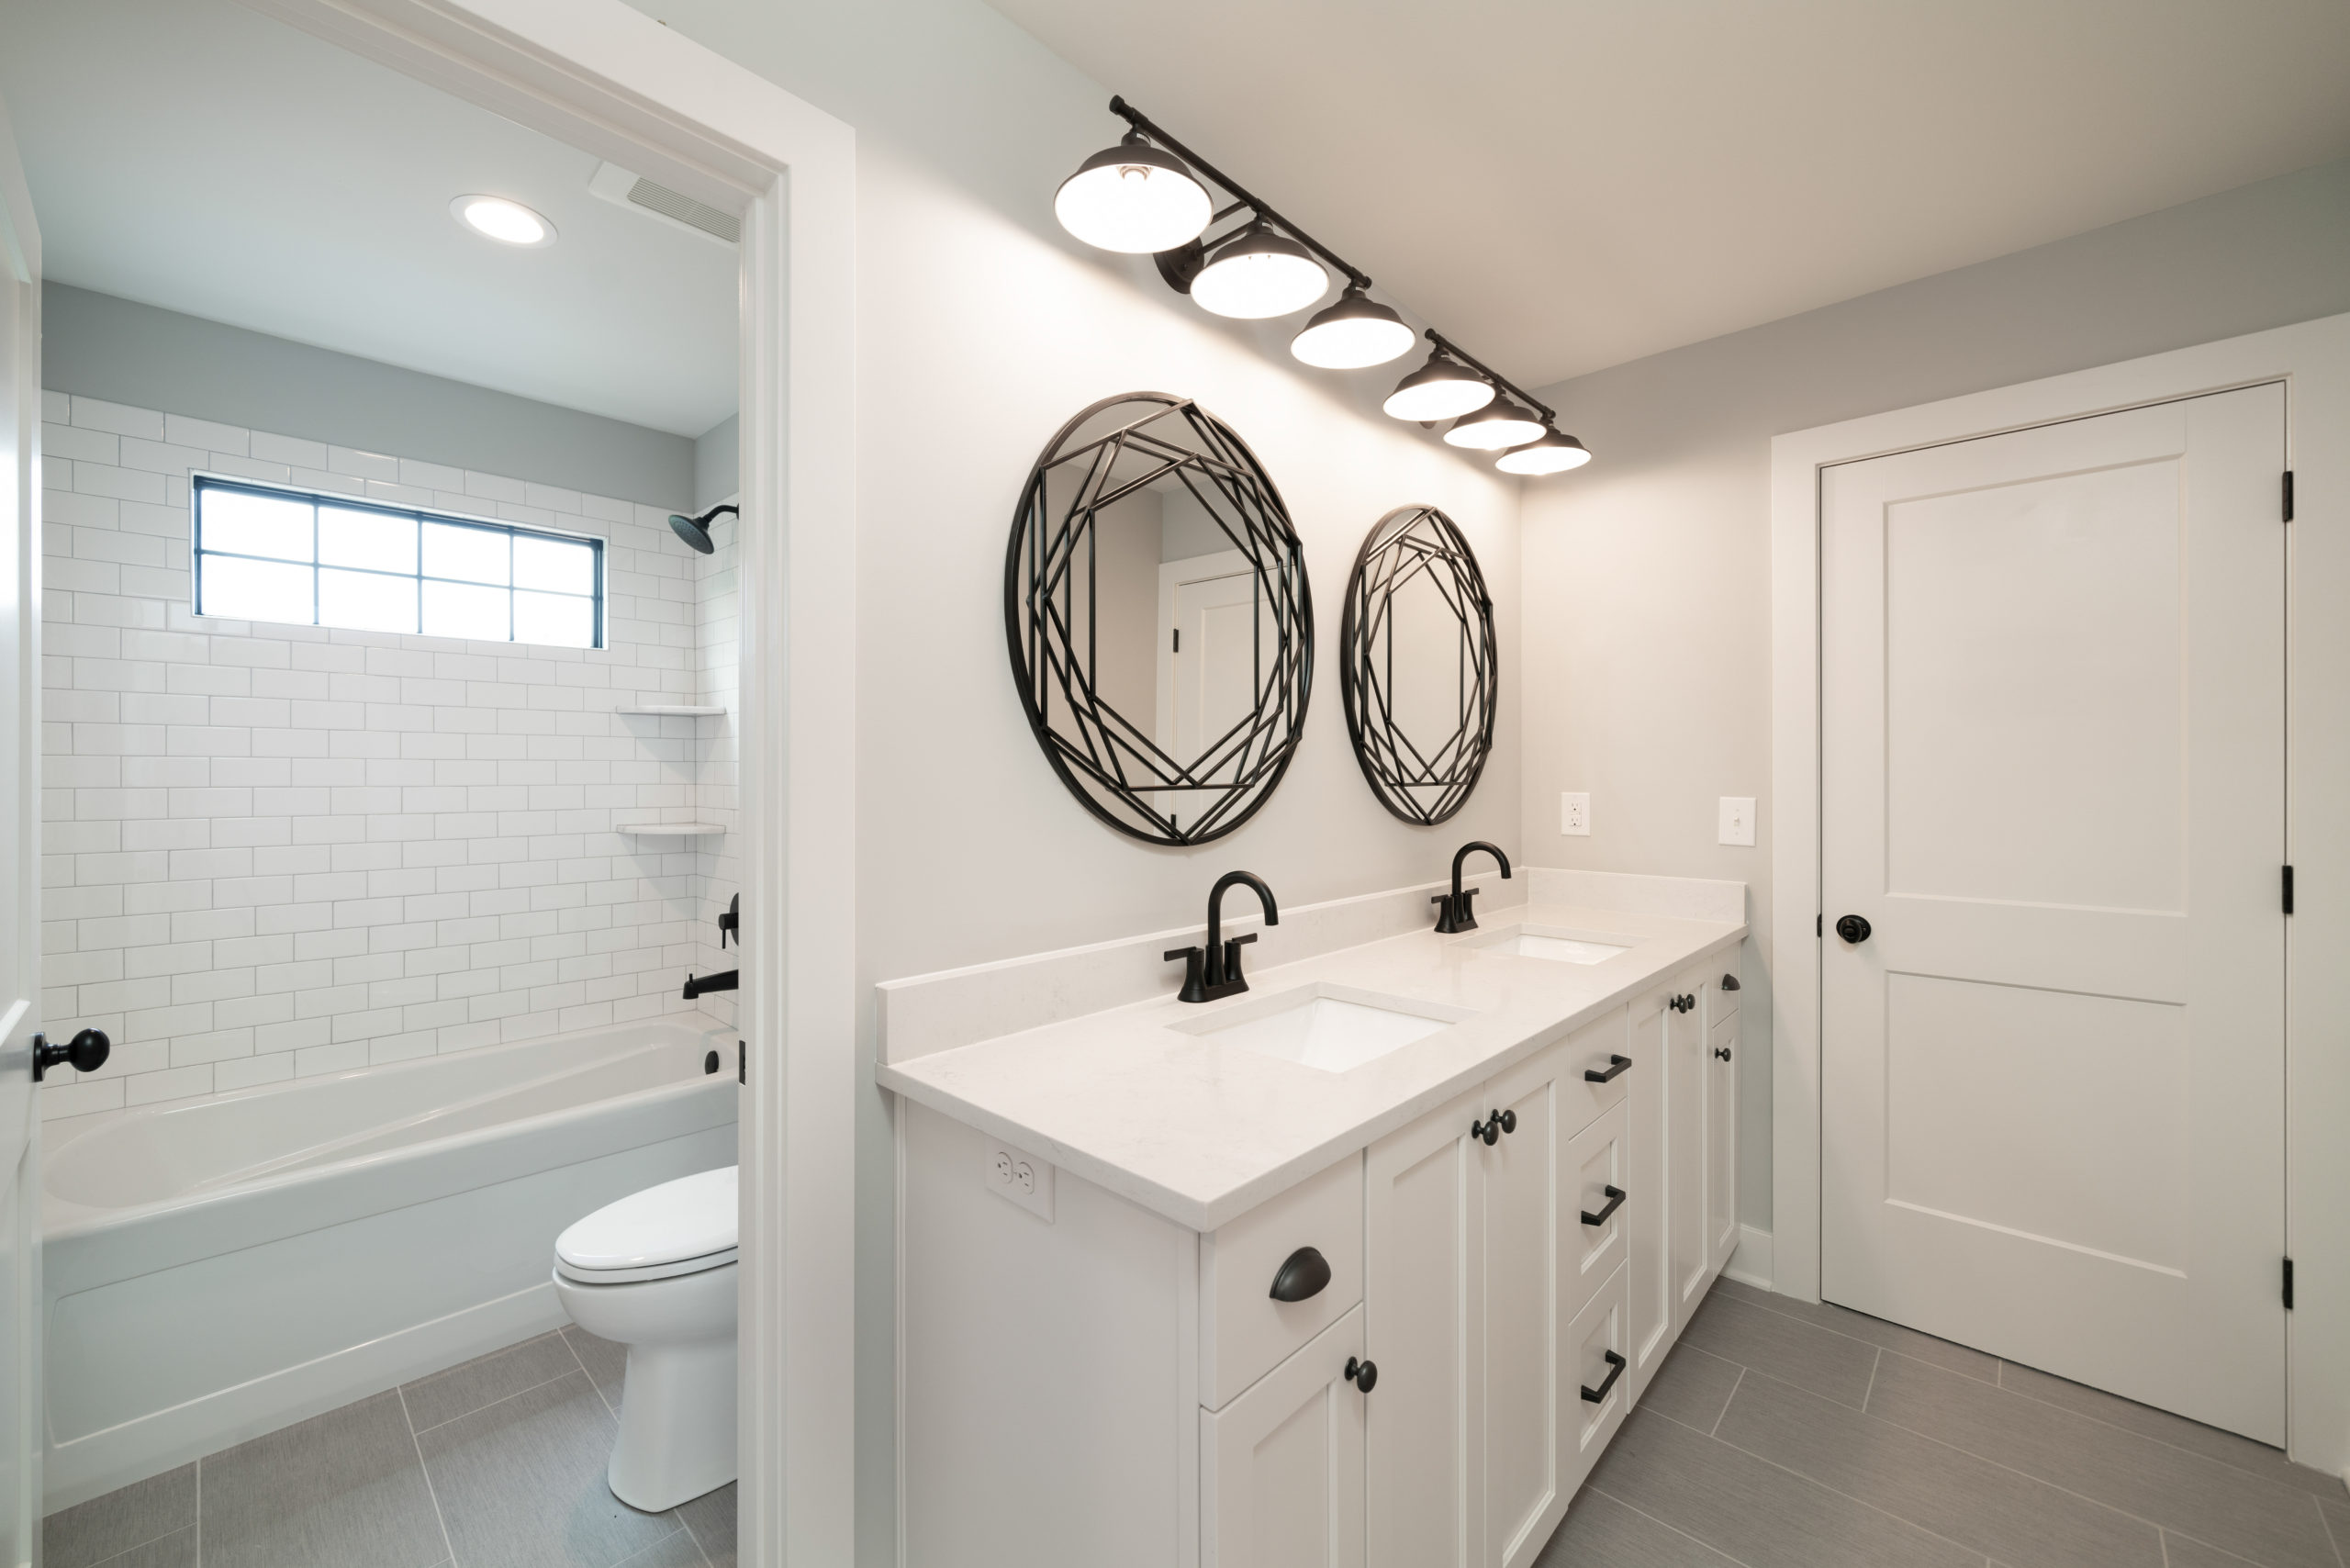 black and white bathroom design with geometric mirrors